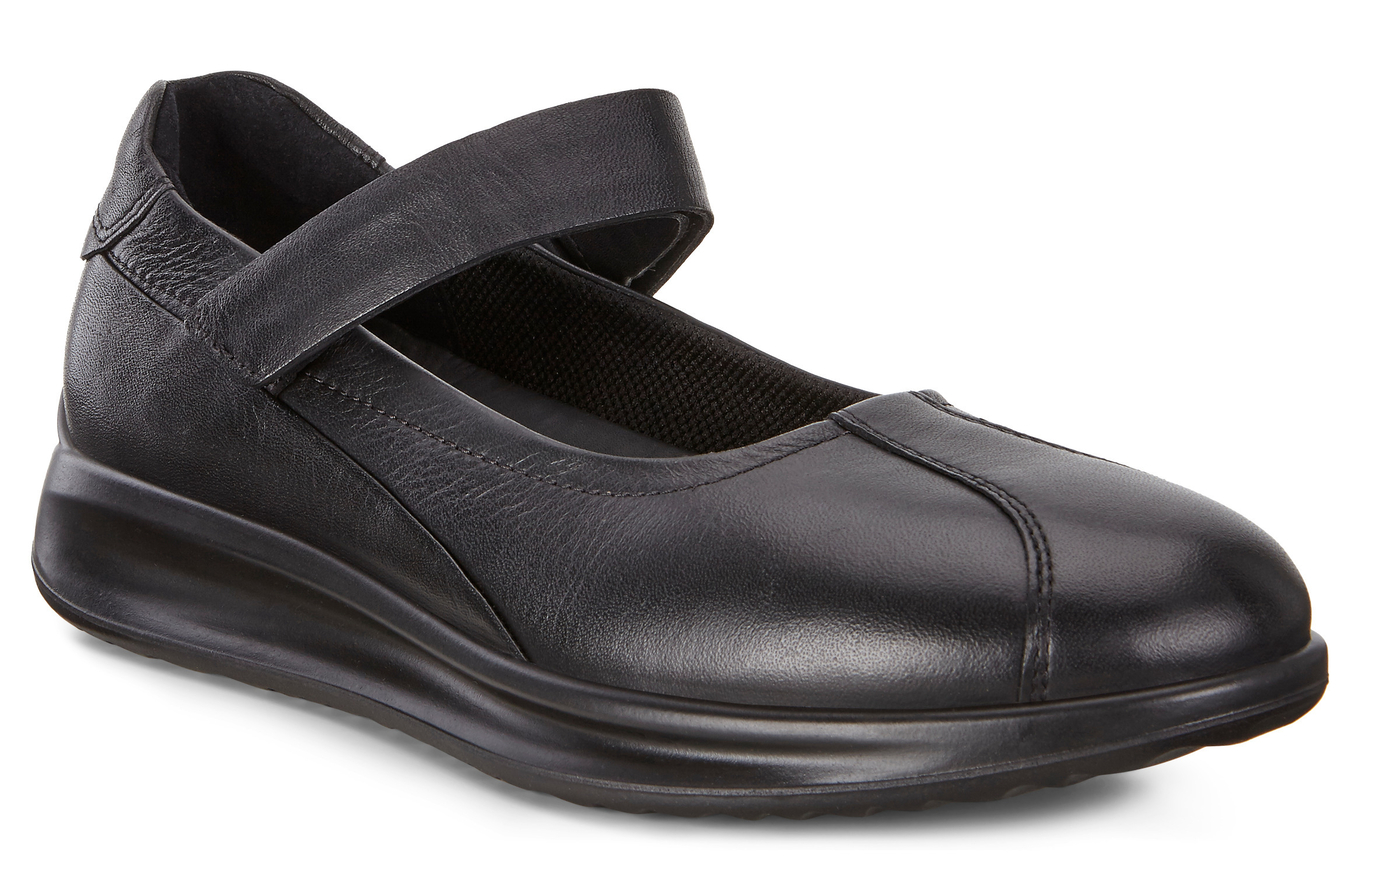 ECCO AQUET Womens Mary Jane